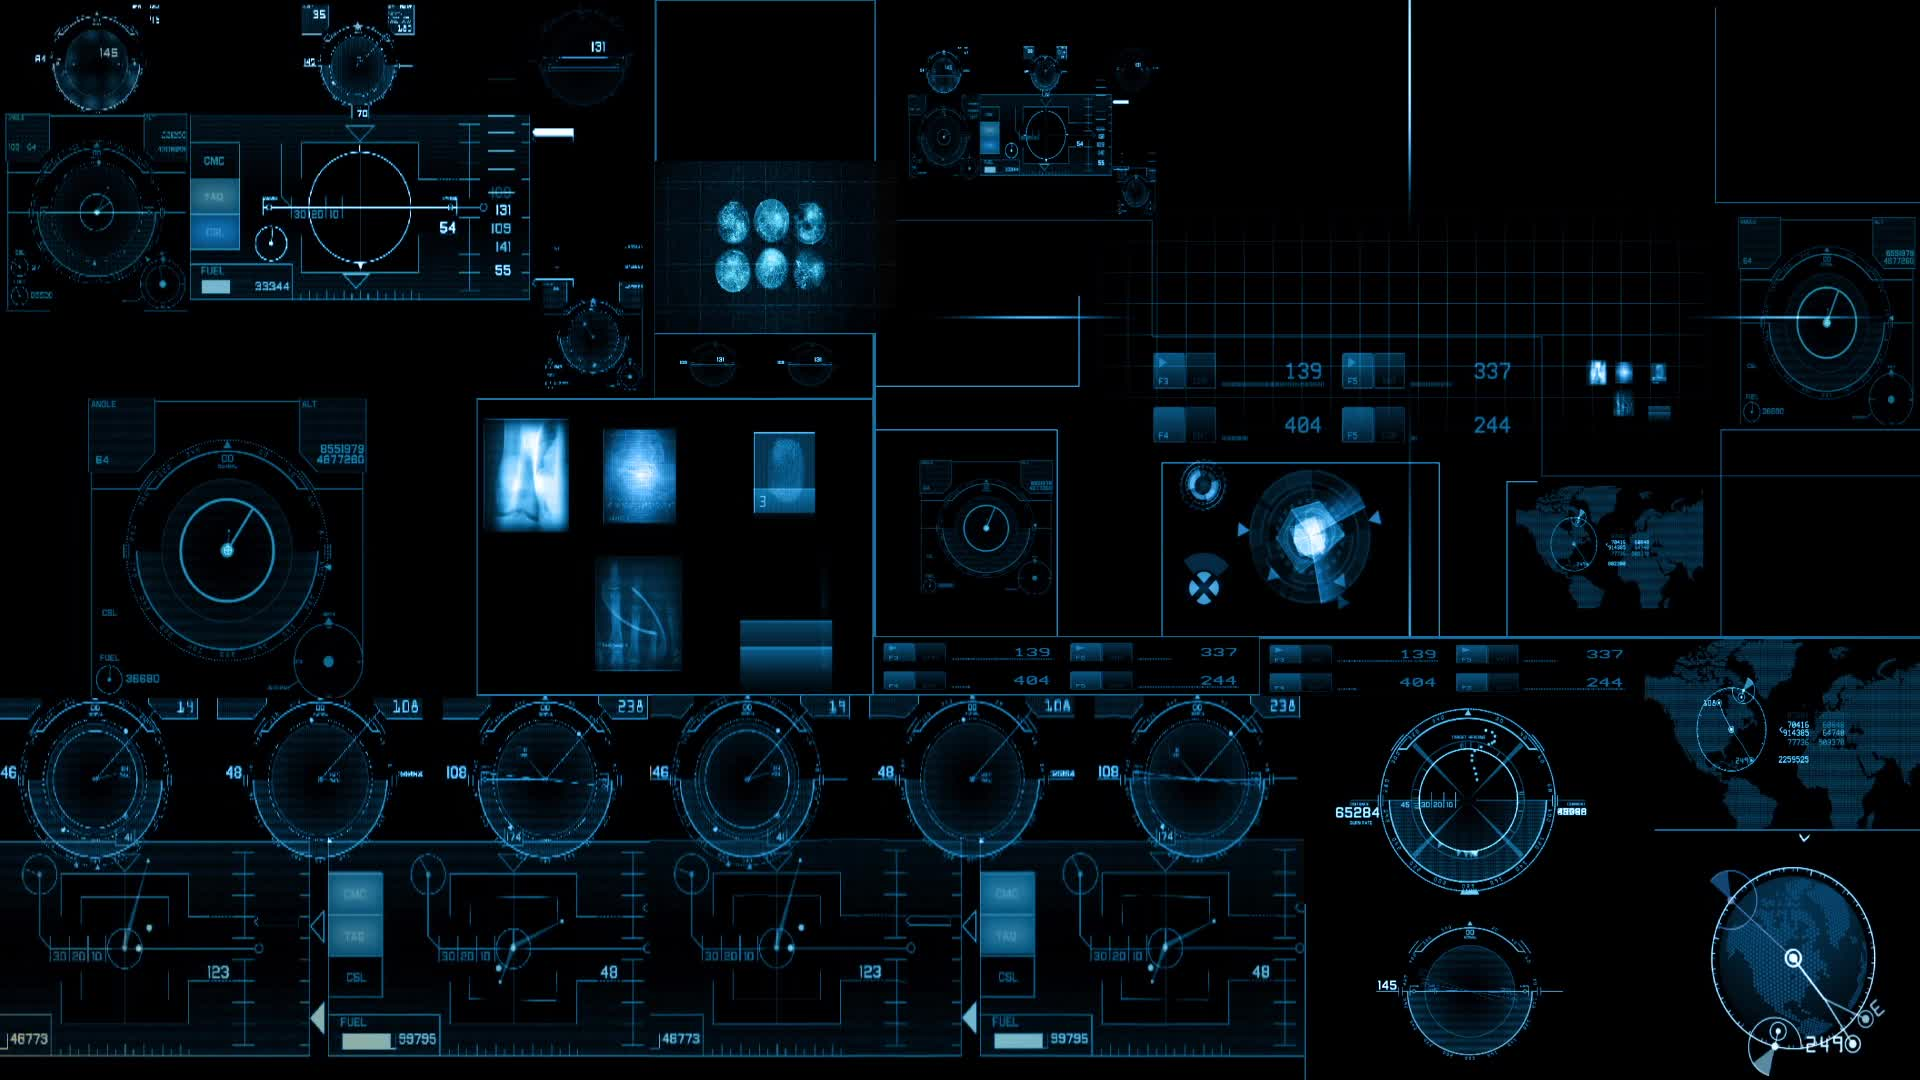 Iphone Wallpaper Icon Template Stock Video Scifi Hud Buy Now 23717469 Pond5